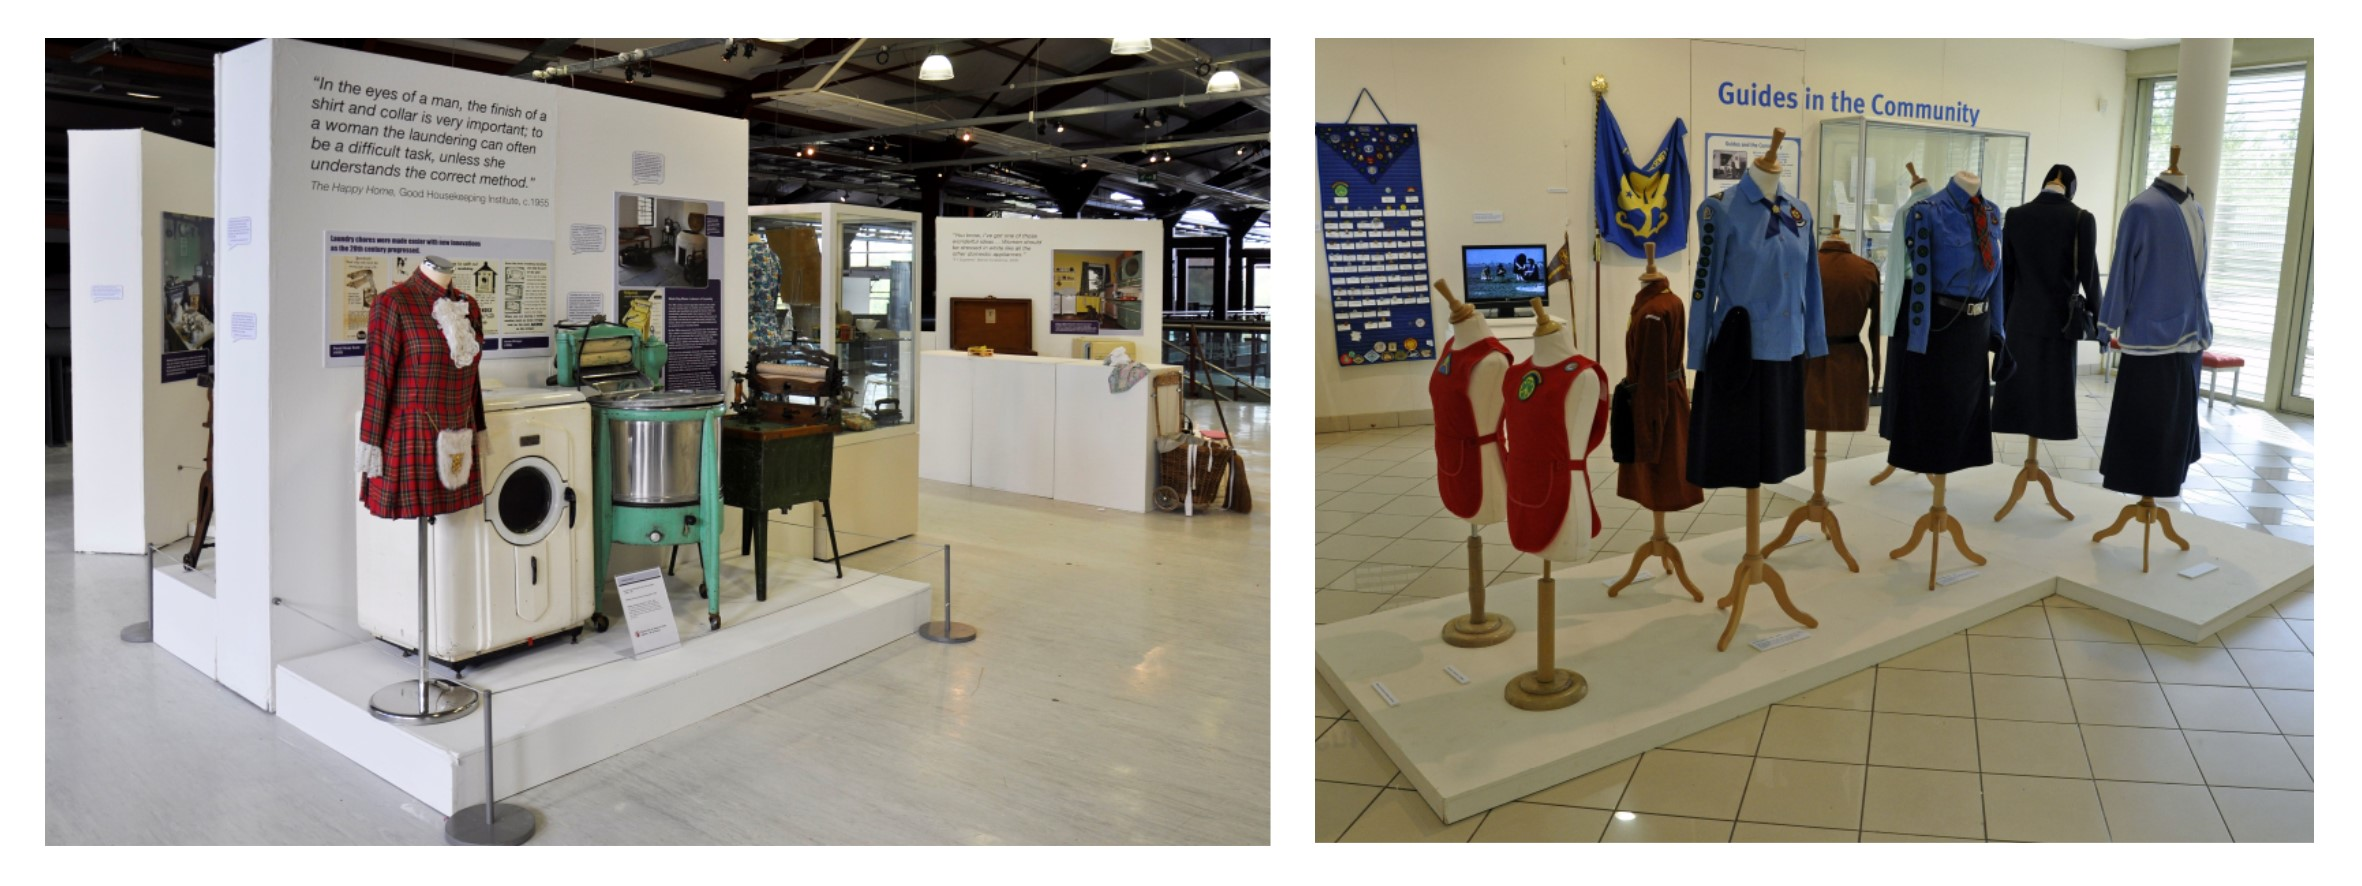 (Left) An exhibition set display of vintage washing machines and (right) mannequins dressed in Girl Guide uniforms